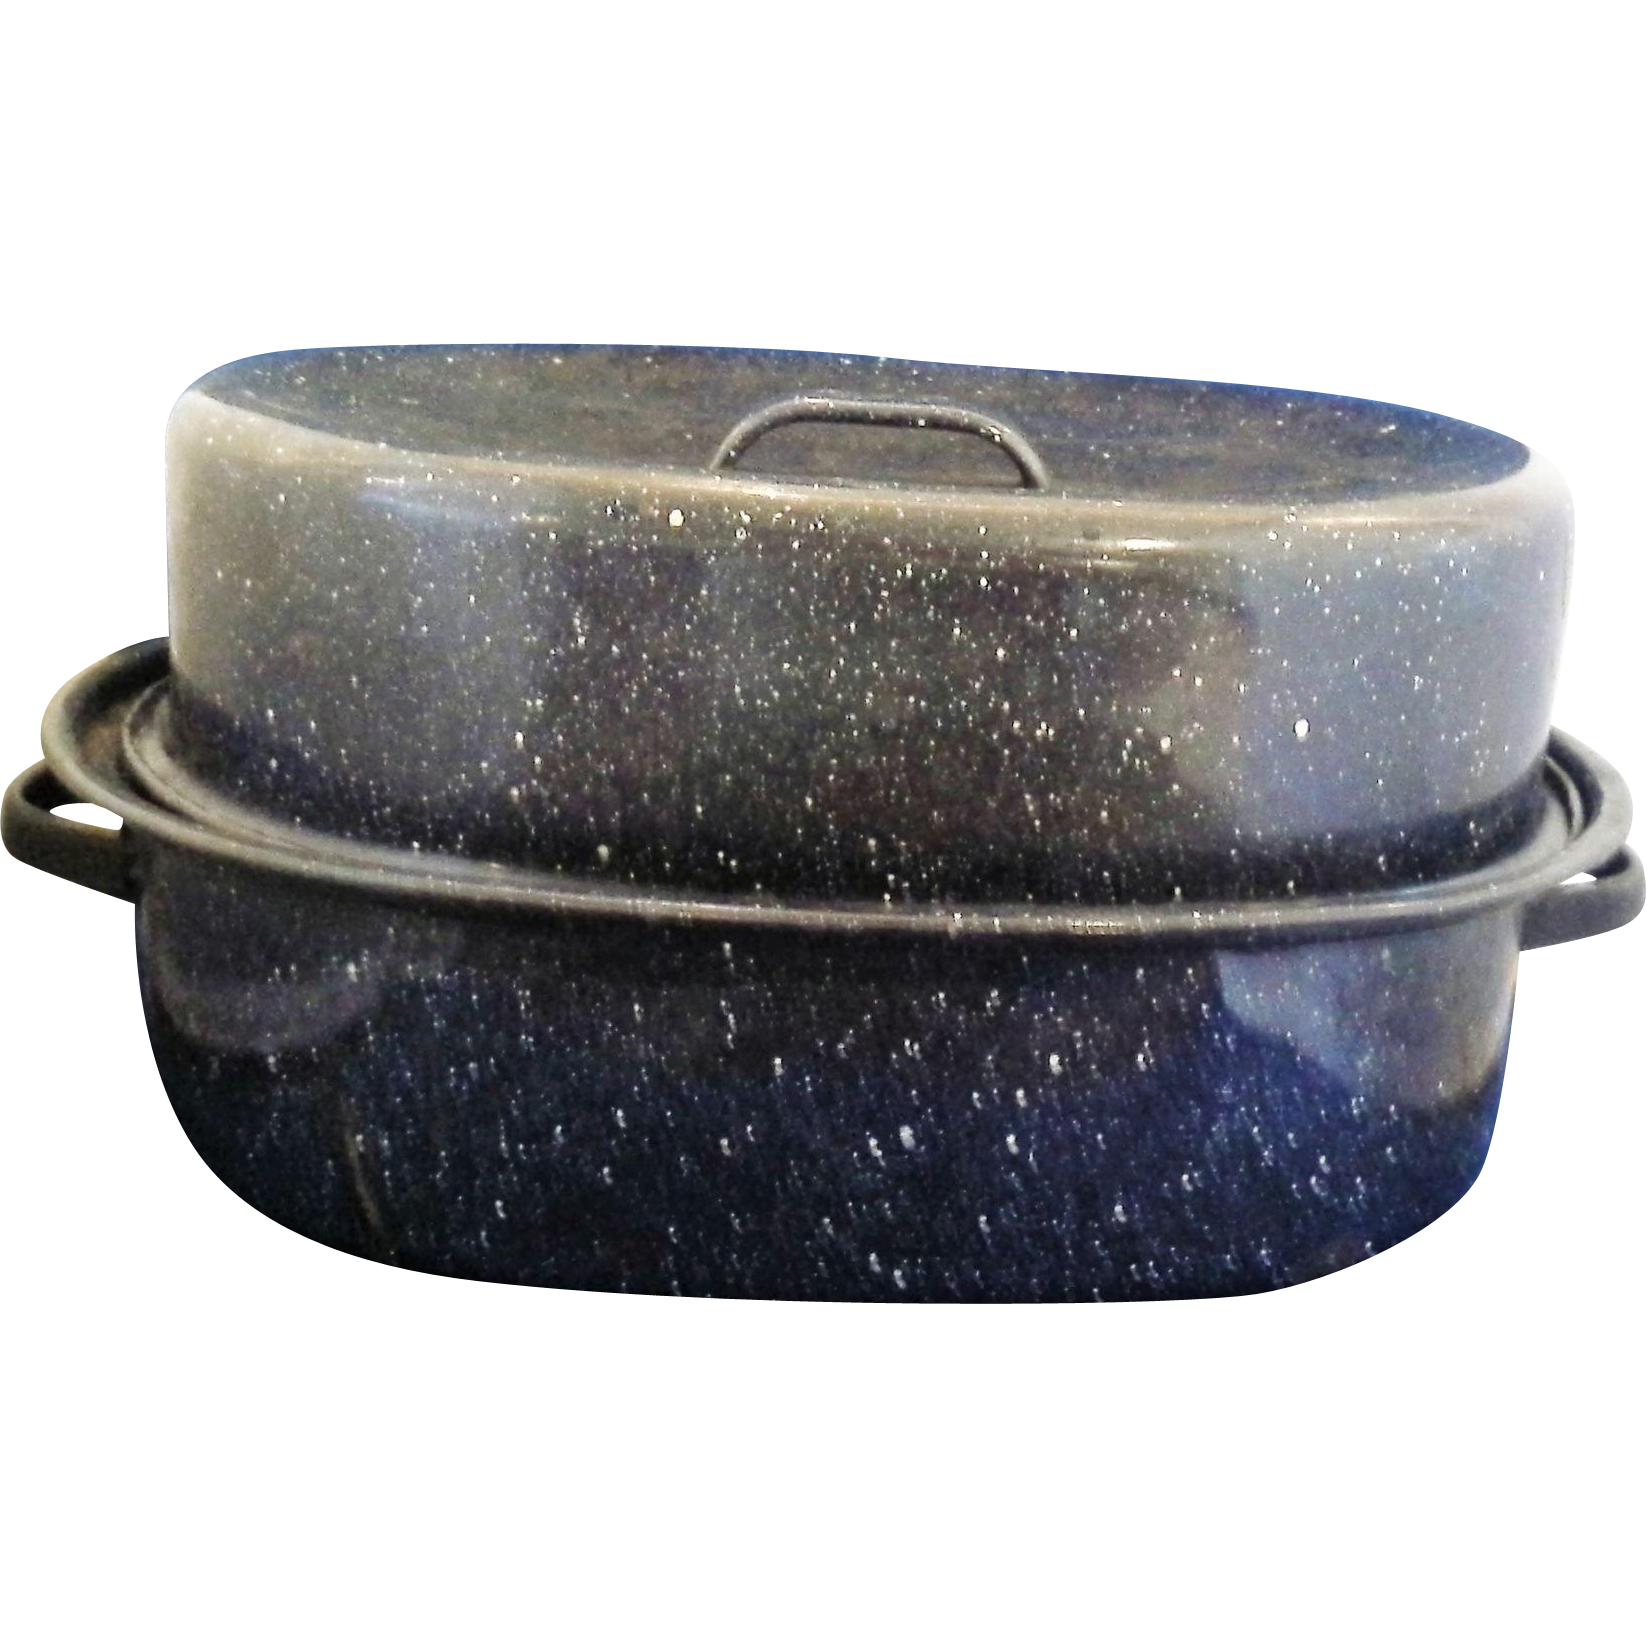 Cobalt Blue White Speckled Graniteware Roaster Roasting Pan 14 IN